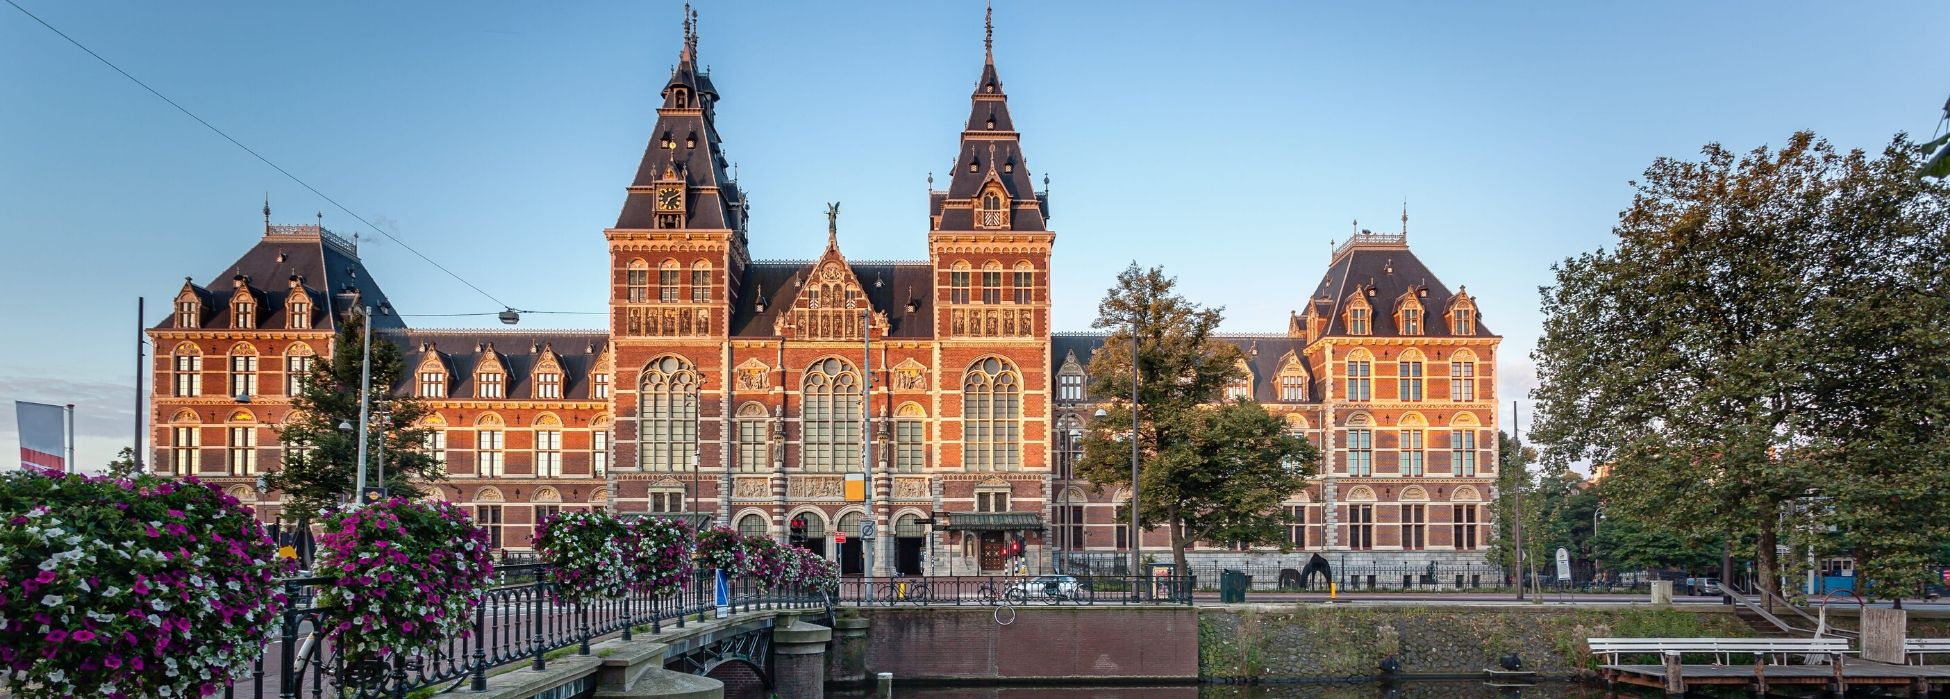 The Rijksmuseum Hydrorock project